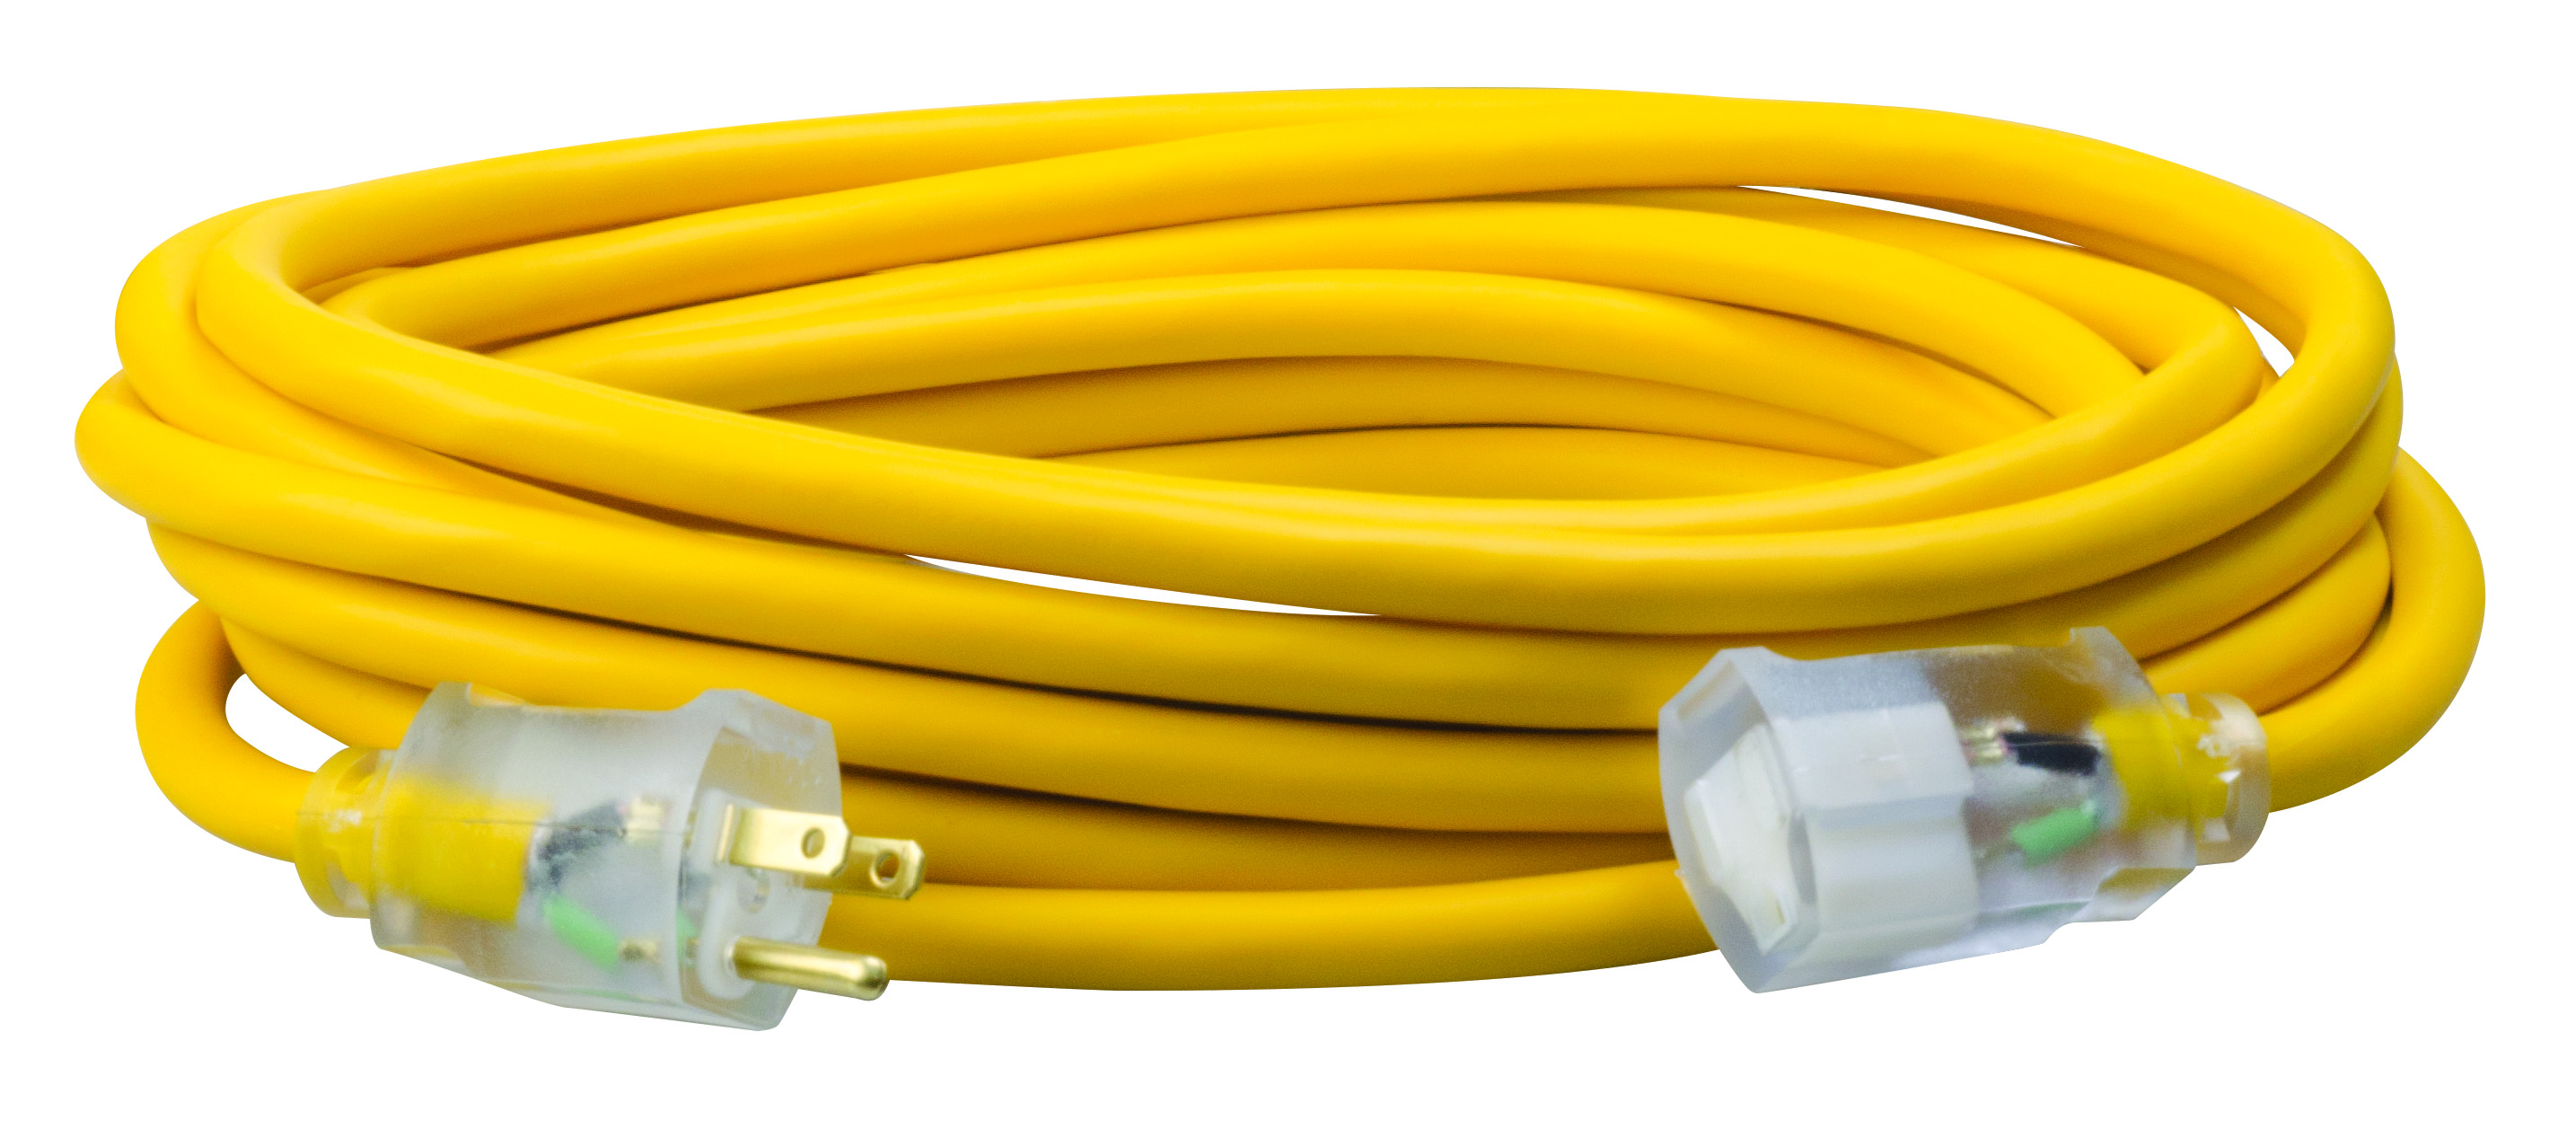 COLEMAN 01687 12/3 25FT SJEO YELLOW LIGHT/END EXTENSION CORD